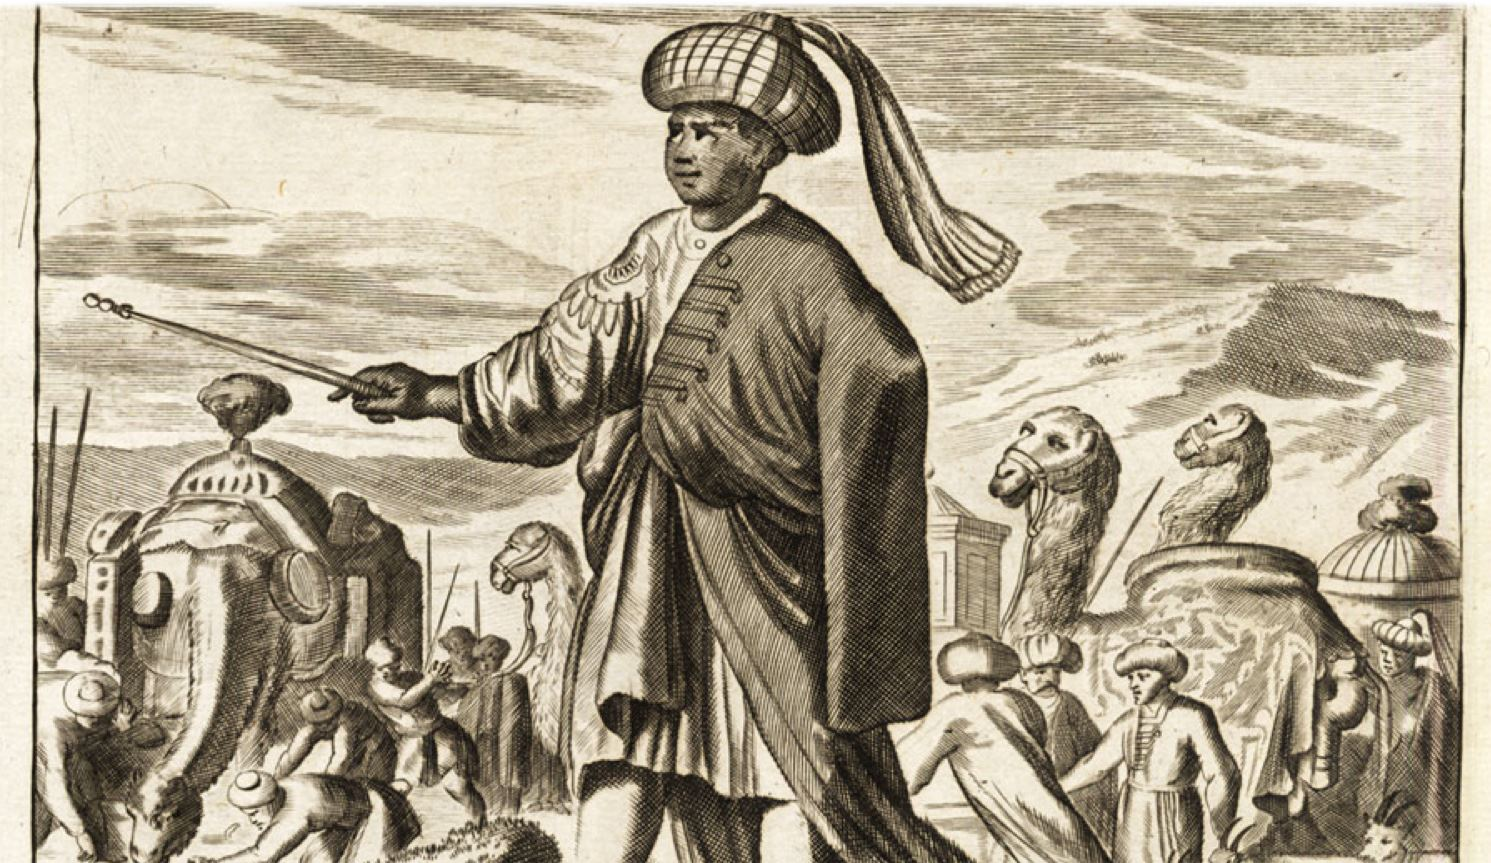 The Slave Who Built a City - Reads